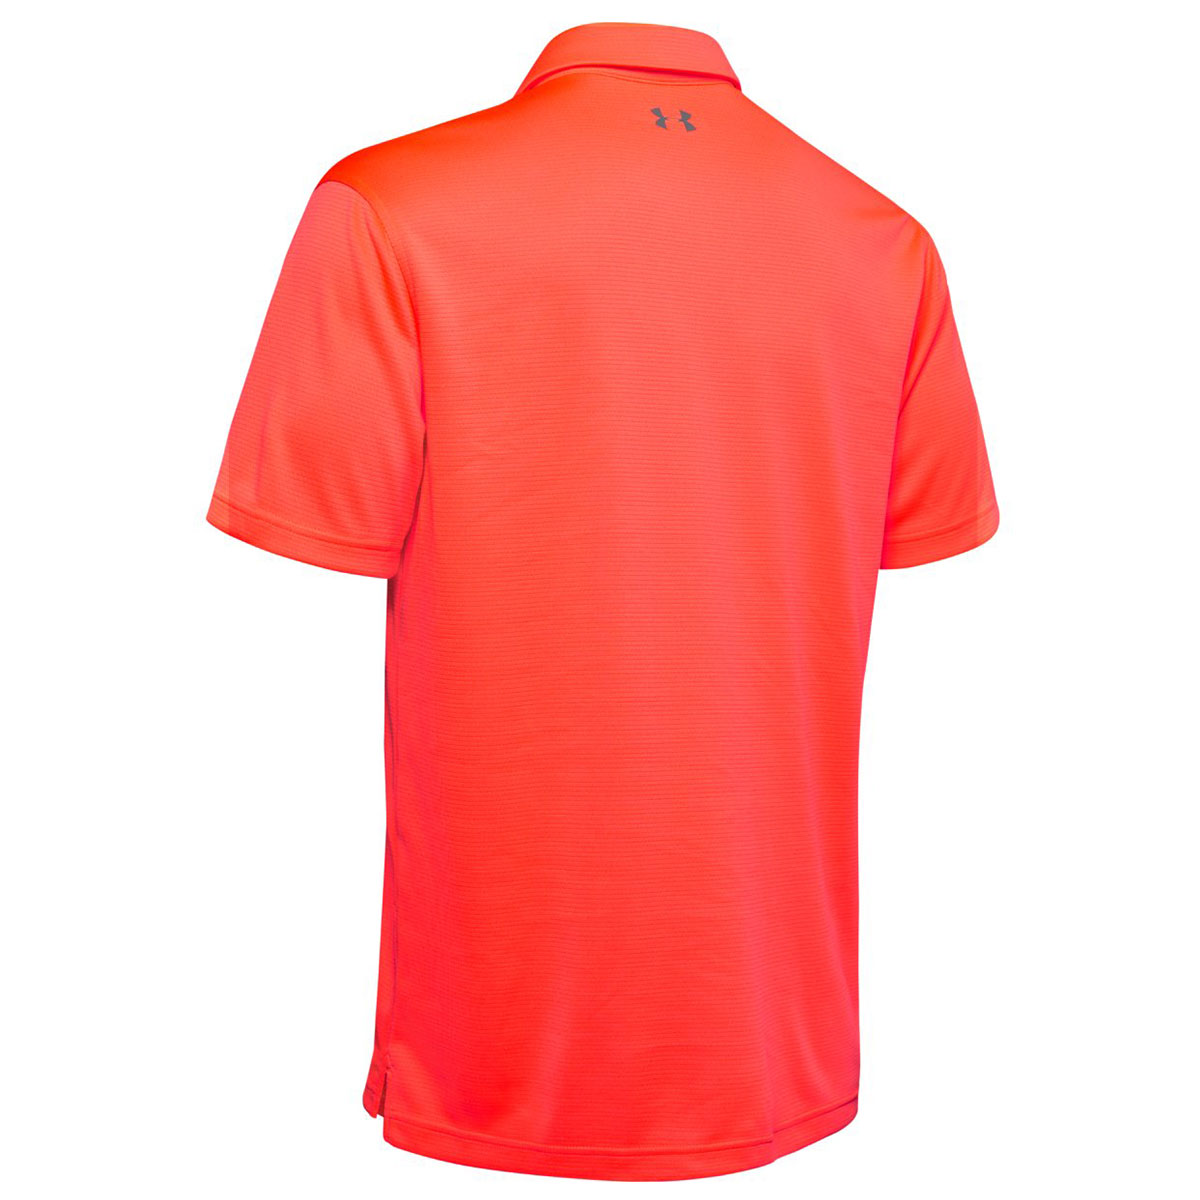 Under-Armour-Mens-Golf-Tech-Wicking-Textured-Soft-Light-Polo-Shirt thumbnail 17